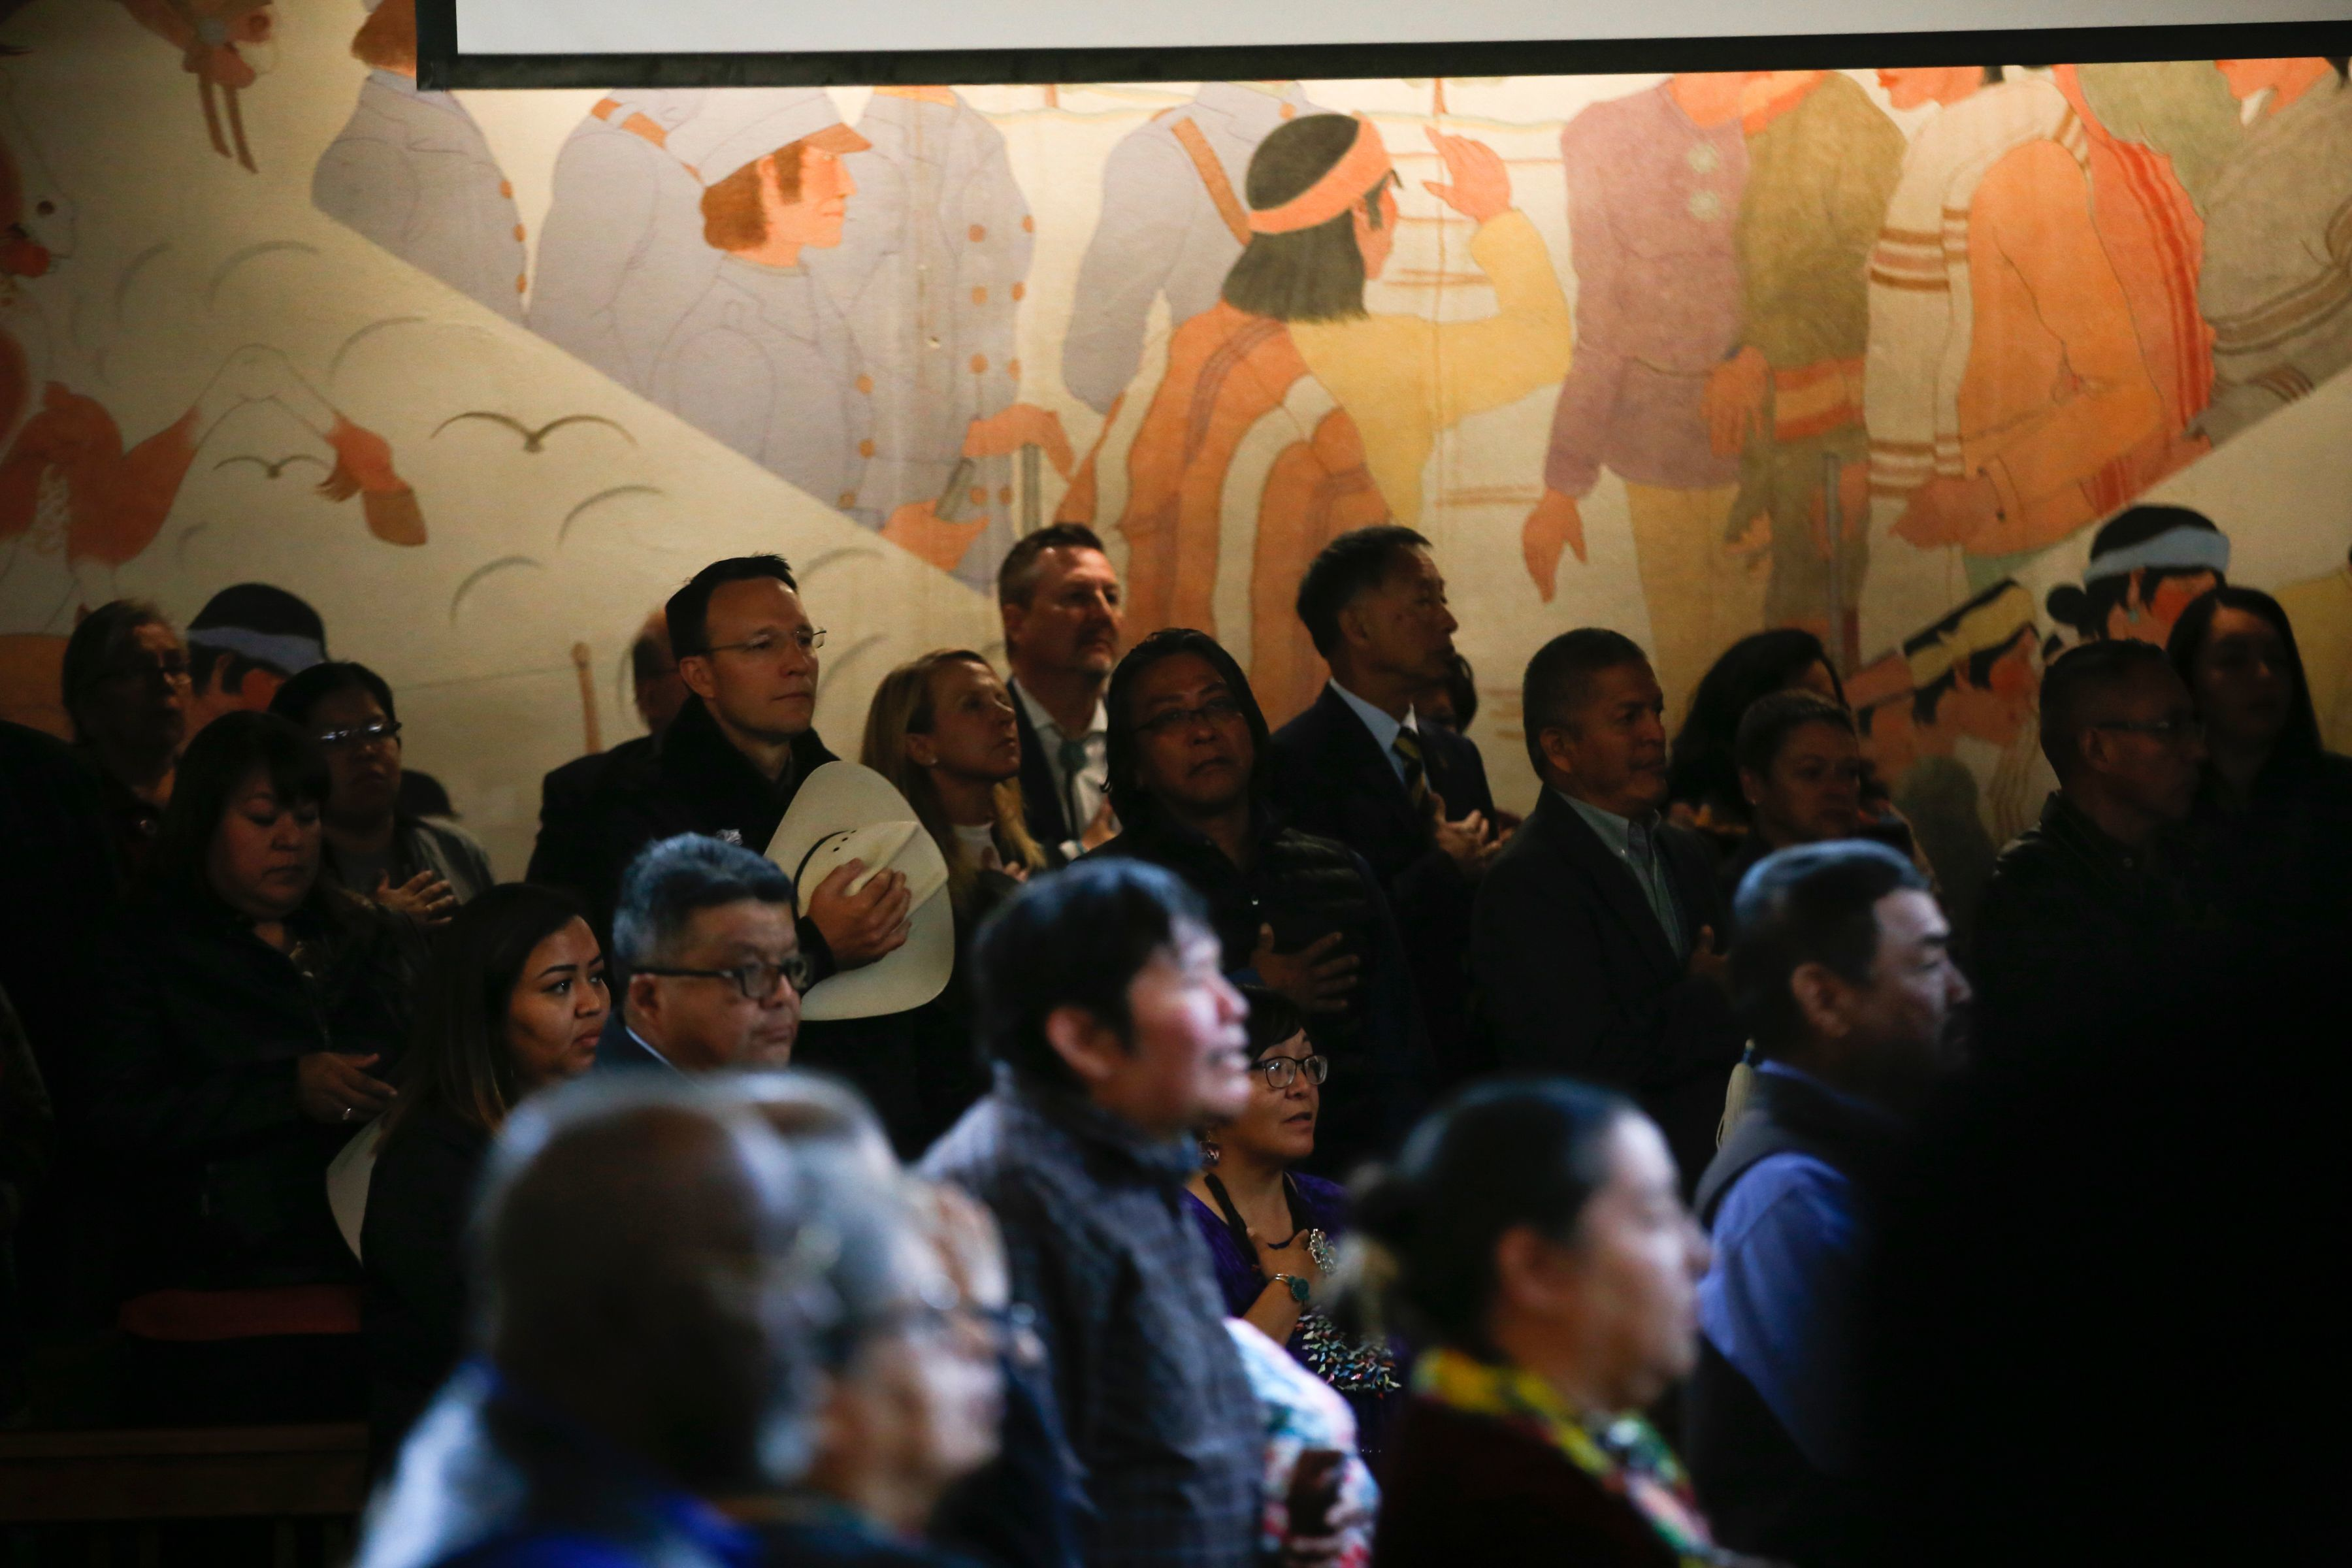 Community members and guests join Navajo Nation Council delegates in the singing of the national anthem on Oct. 15, 2018 at the council chamber in Window Rock, Arizona.